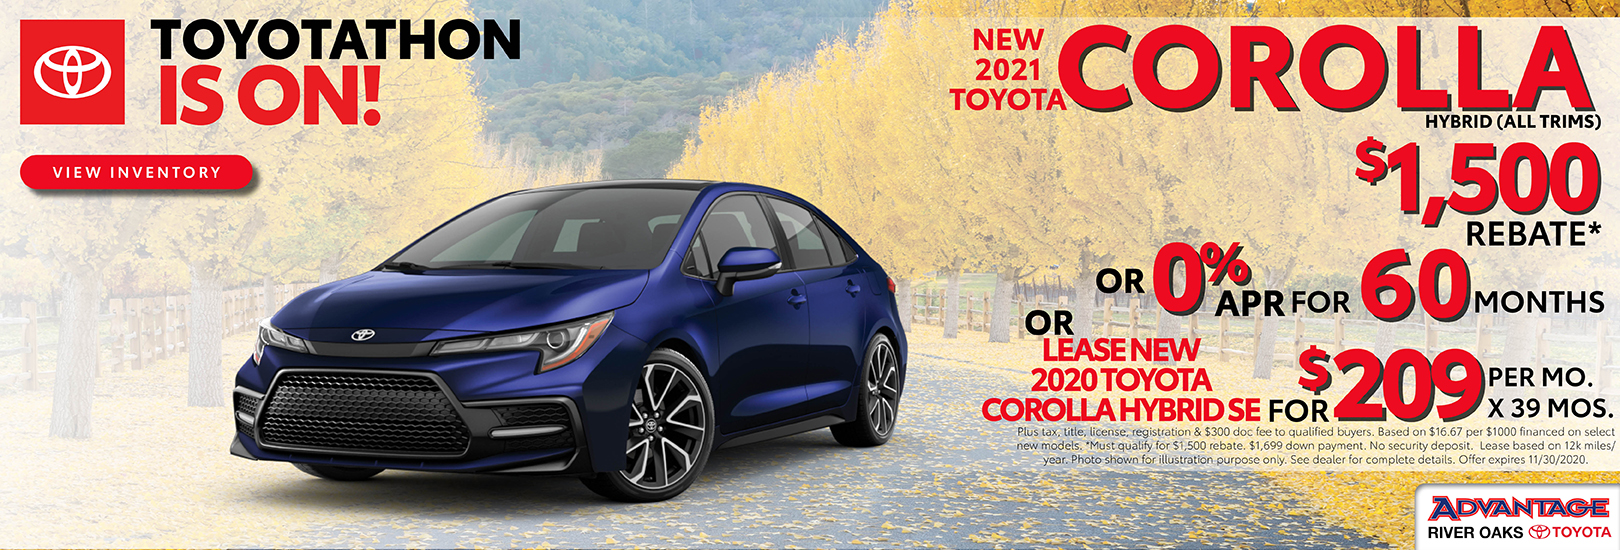 2020 Toyota Corolla Finance Lease Offer | Calumet City, IL